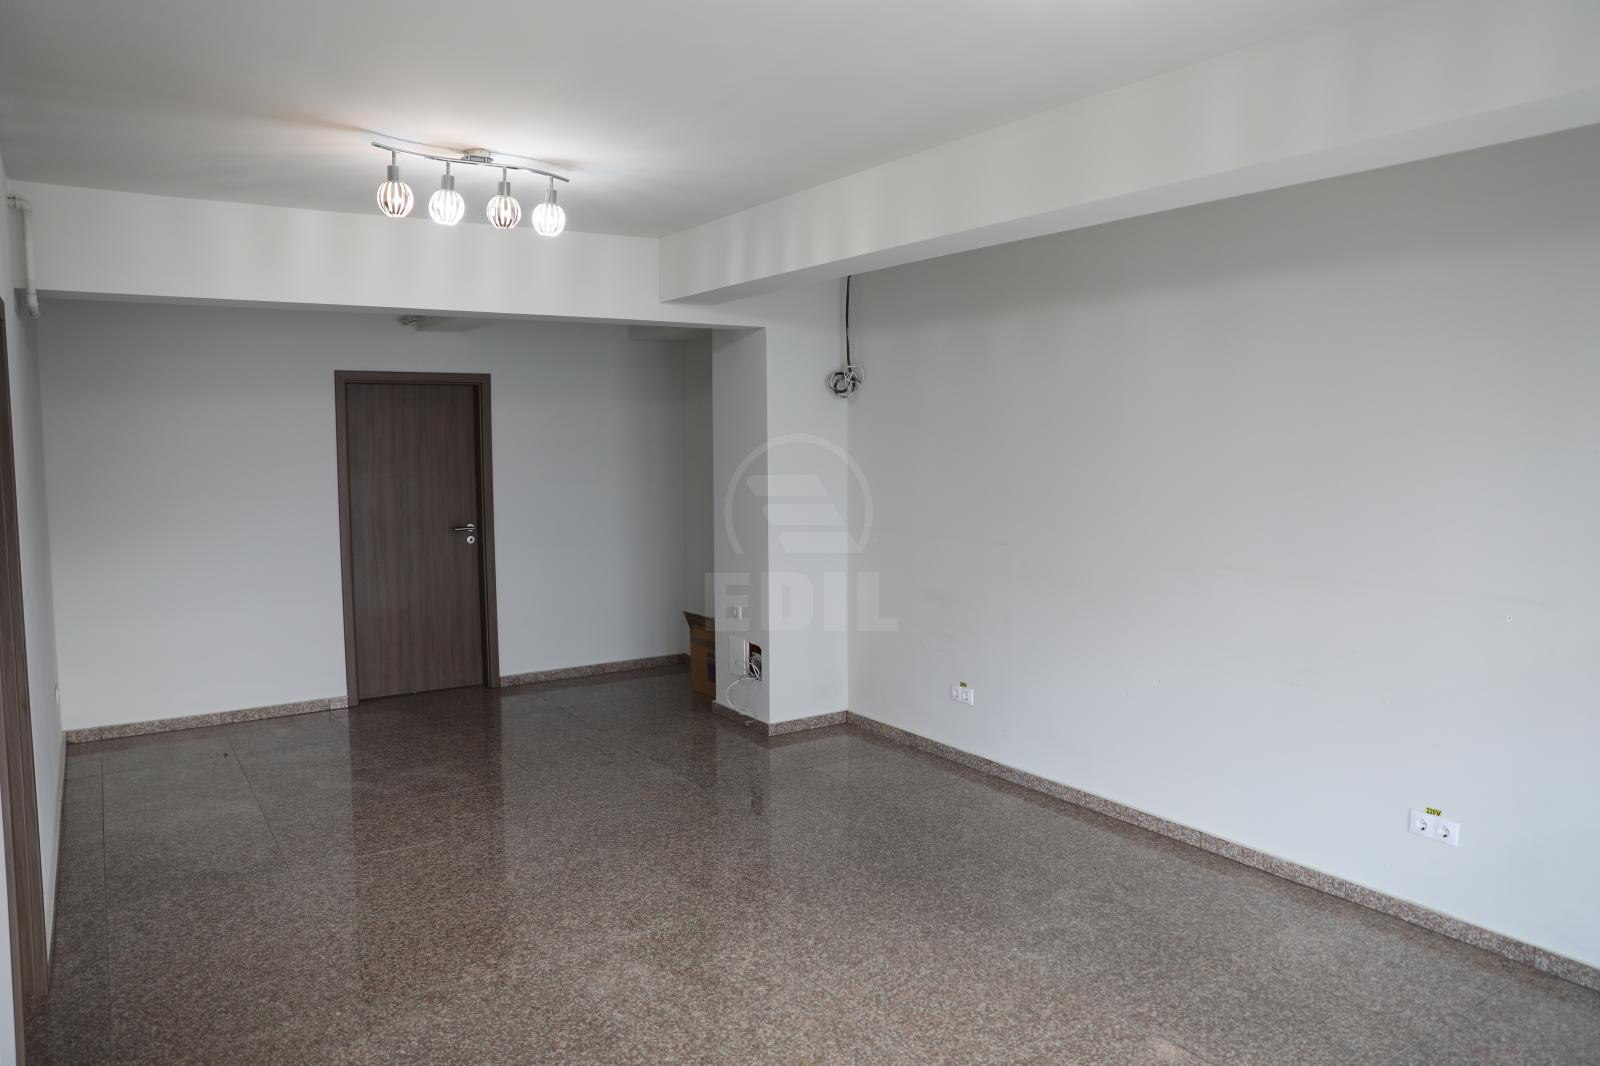 Commercial space for sale 3 rooms, SCCJ297529-1